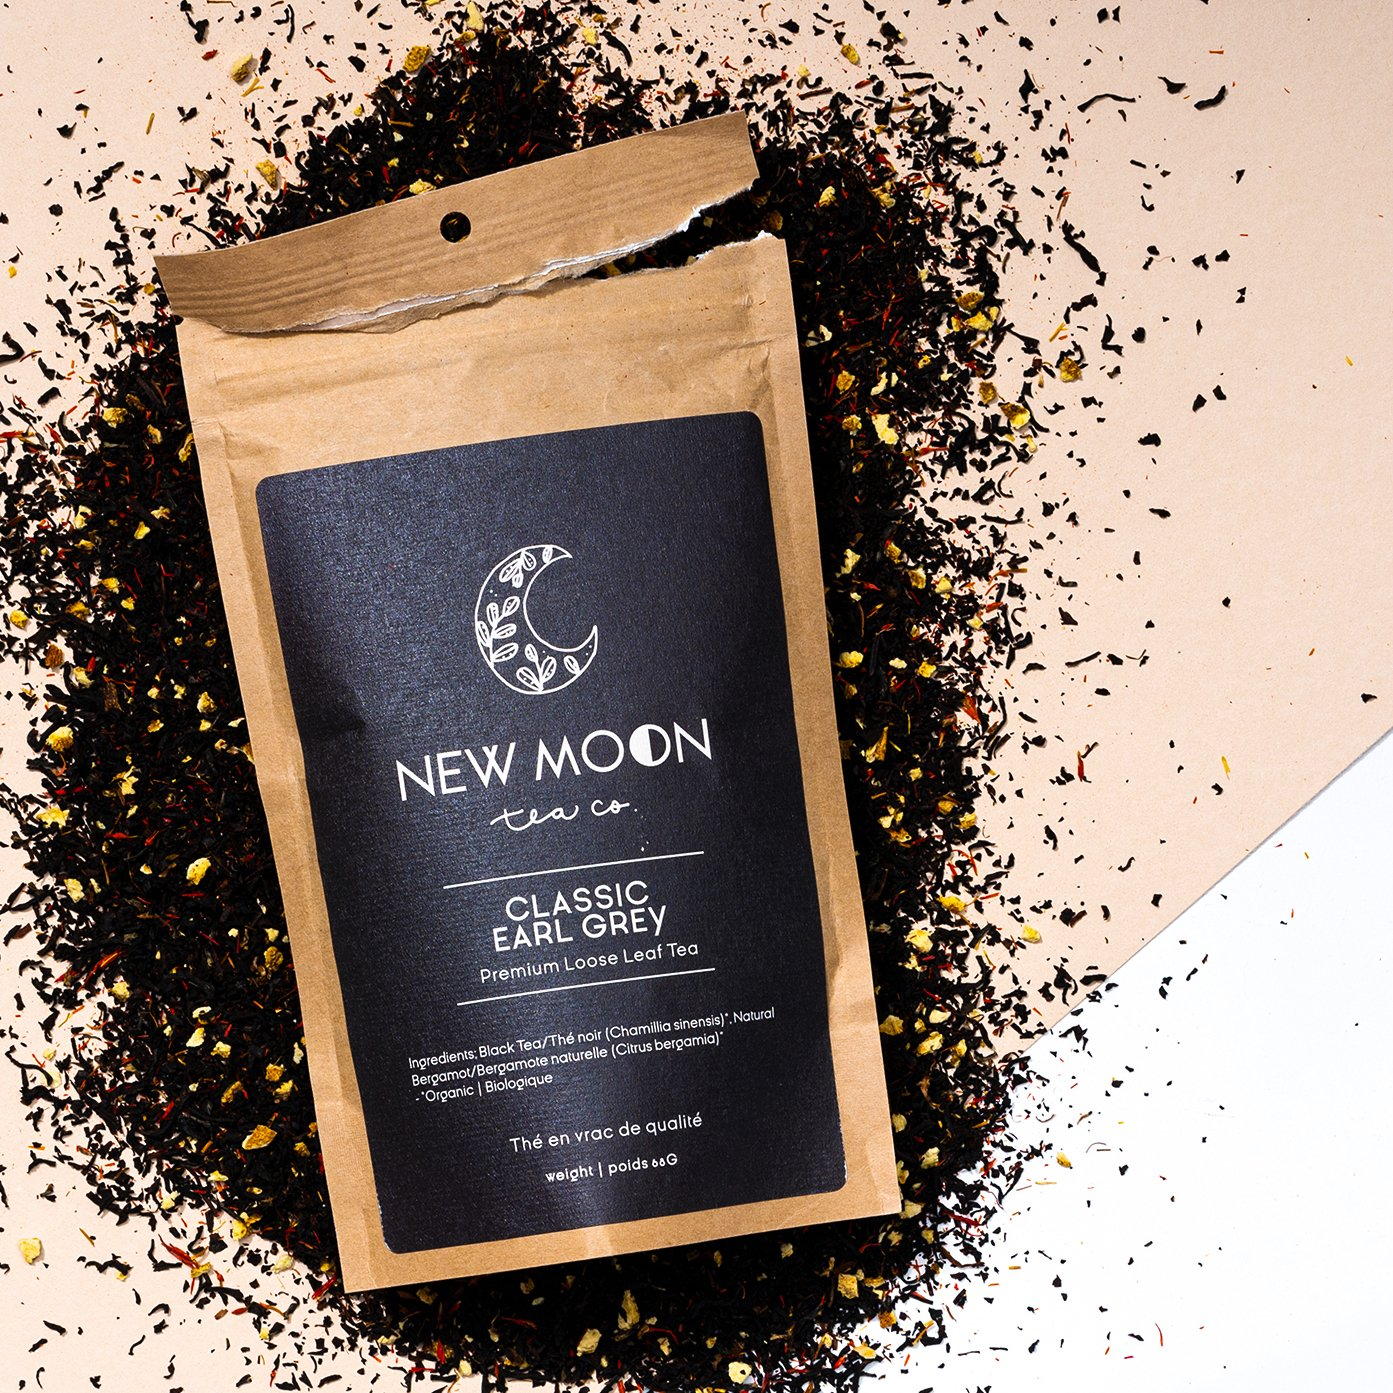 Elate Ethical Marketplace New Moon Organic Loose Leaf tea as part of our holiday christmas collection. Classic earl grey in a recycled kraft paper pouch.